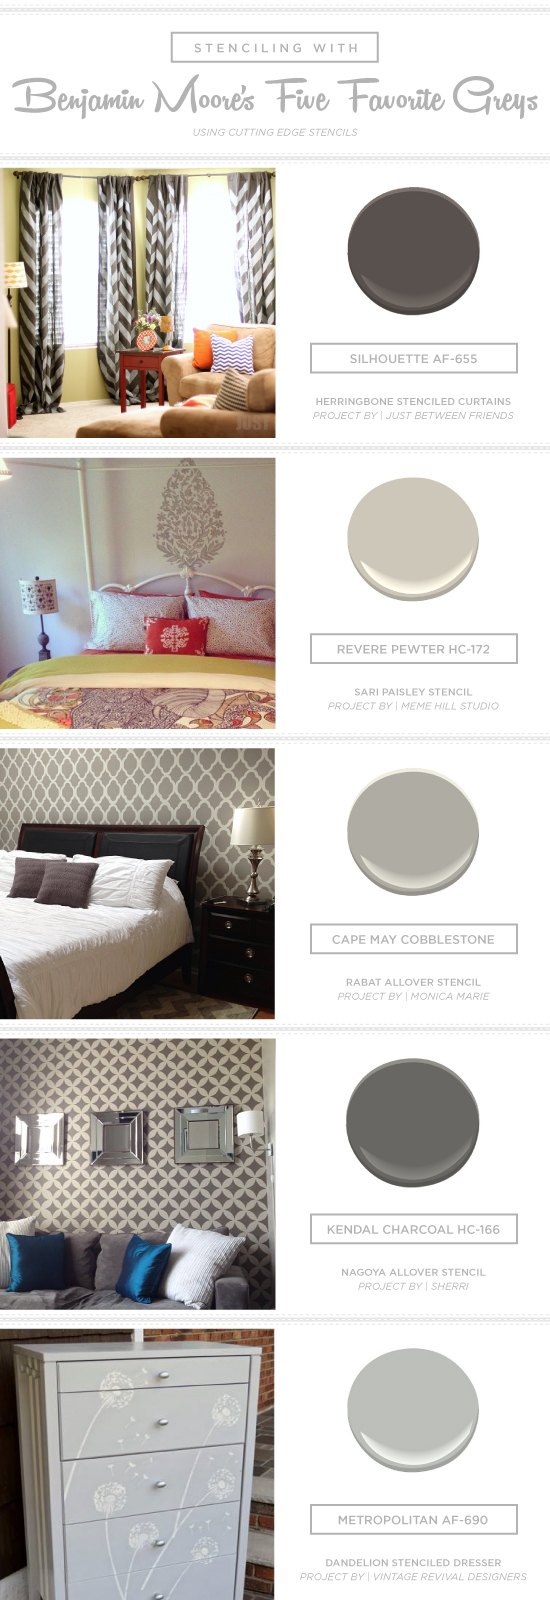 Stenciling With Benjamin Moore S Five Favorite Grays Stencil Stories